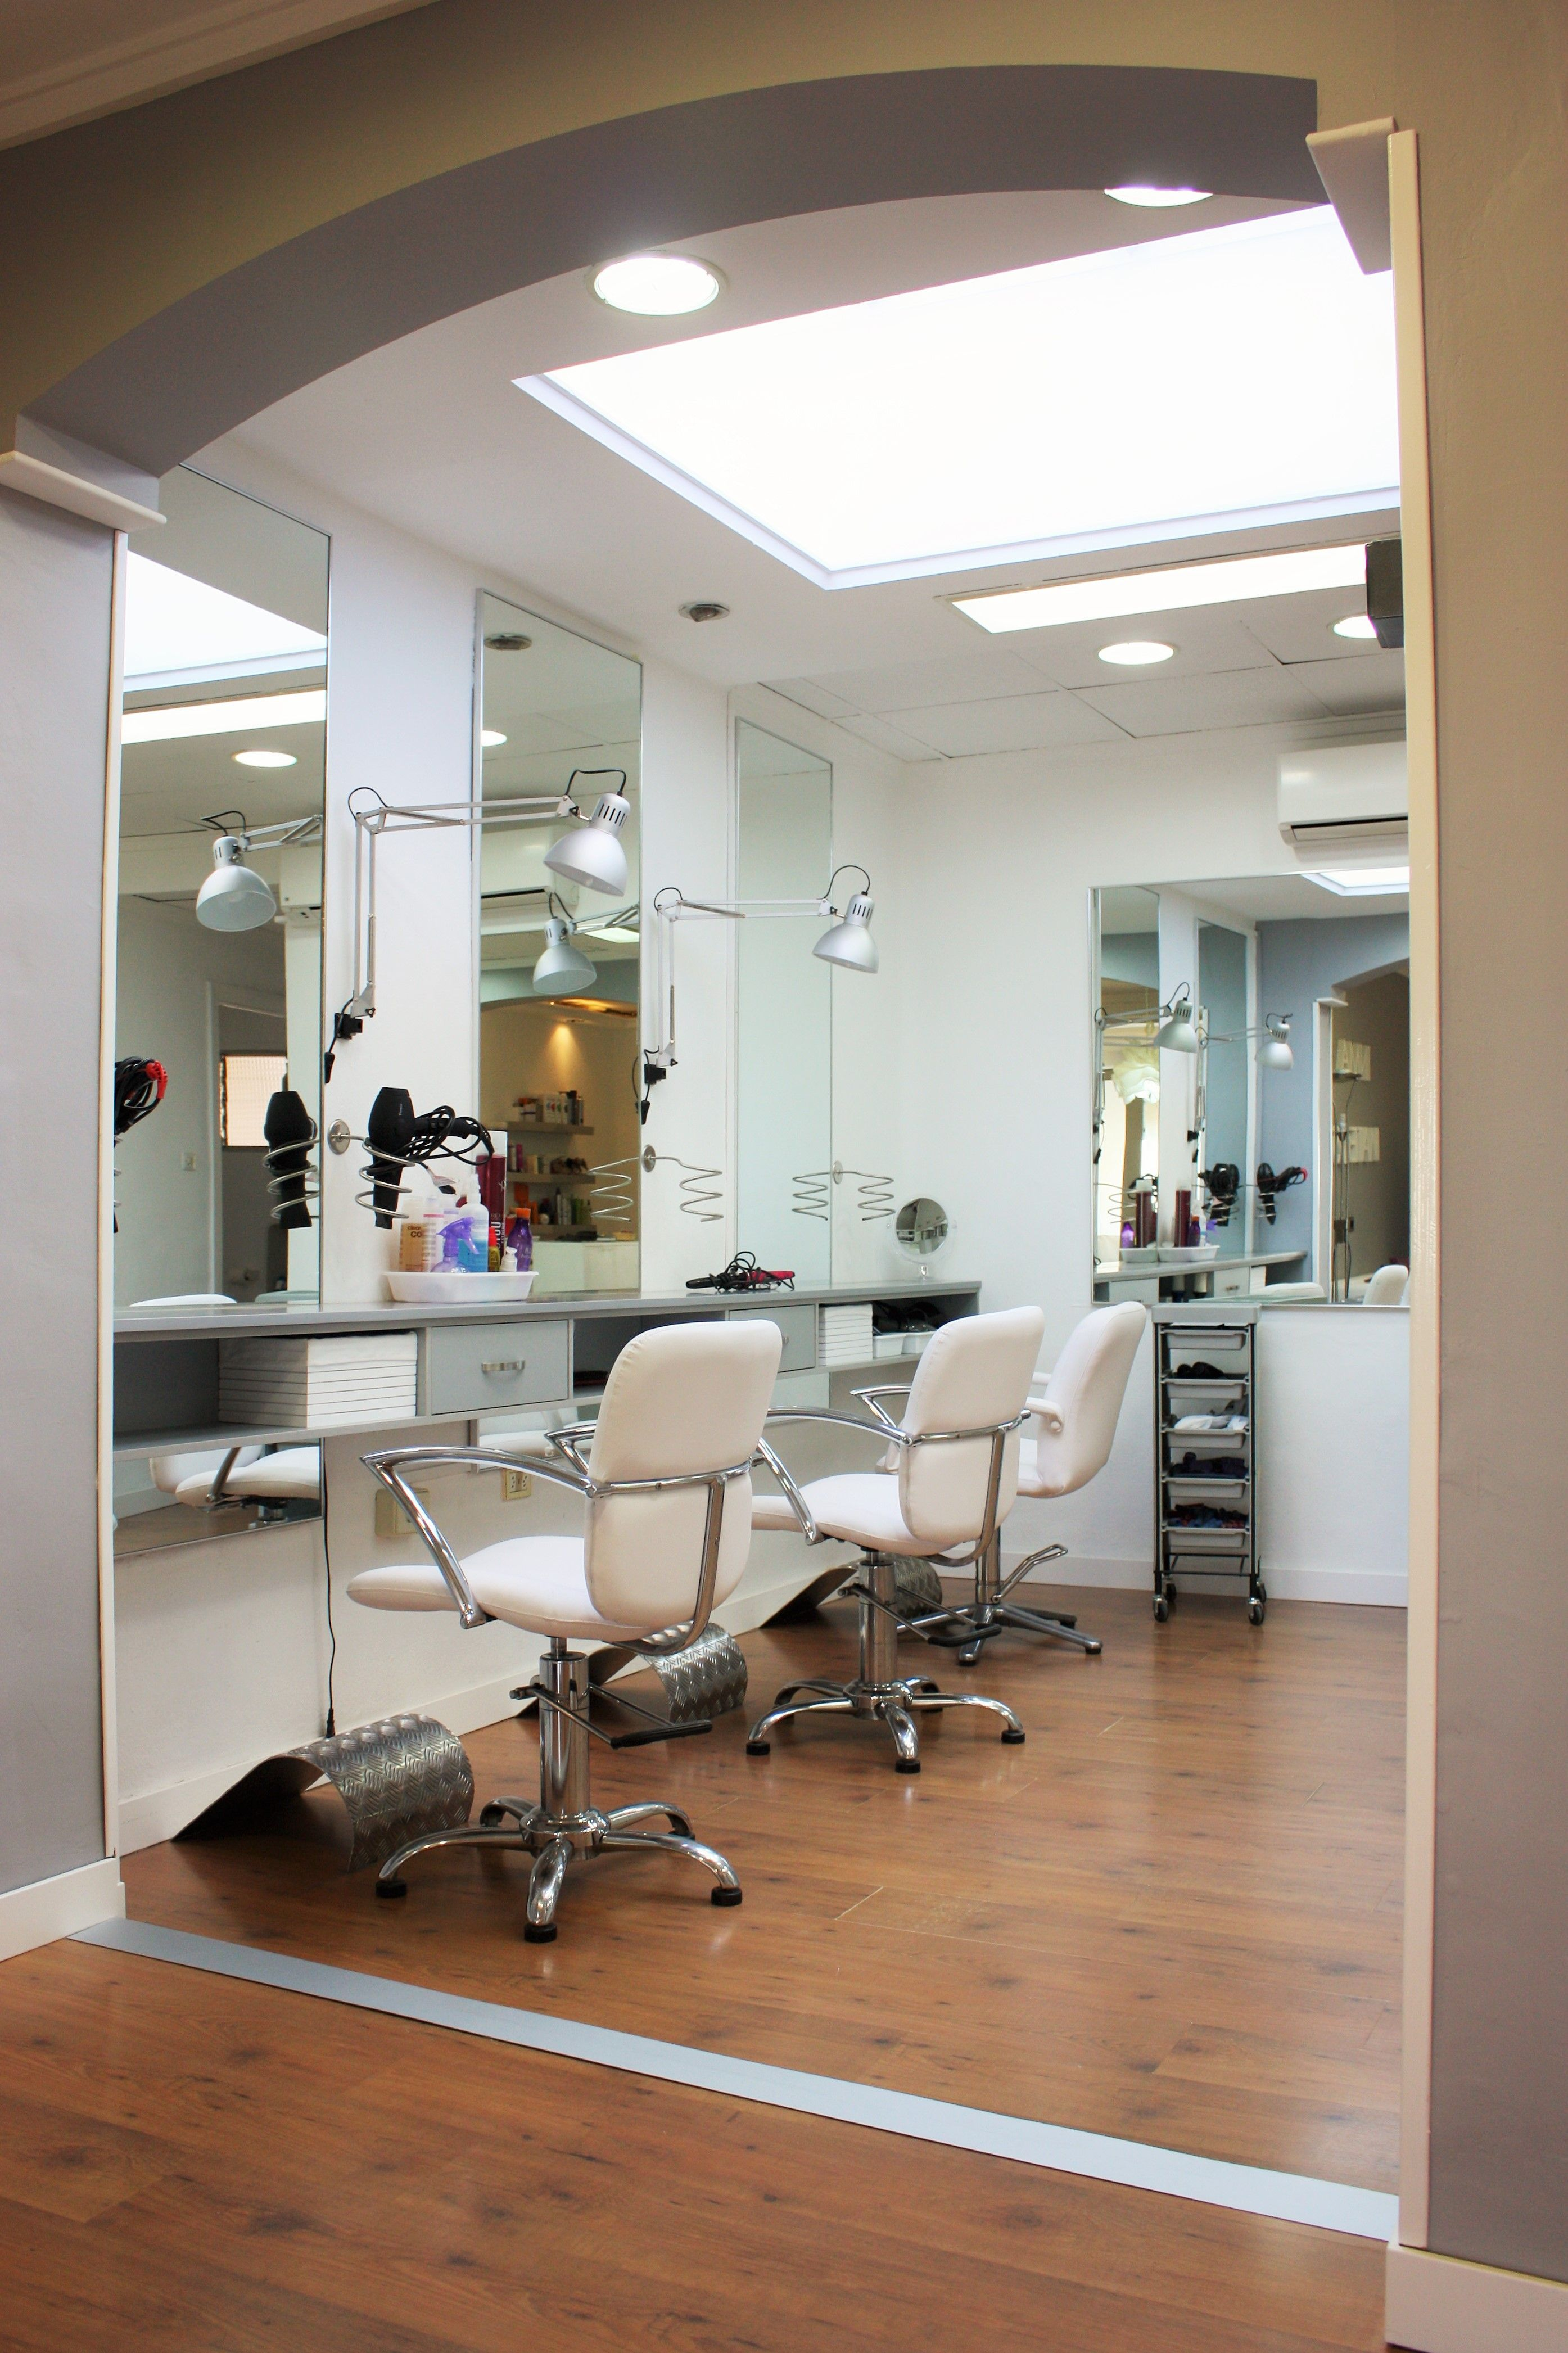 Finally we show you the images of the new hair salon of ...